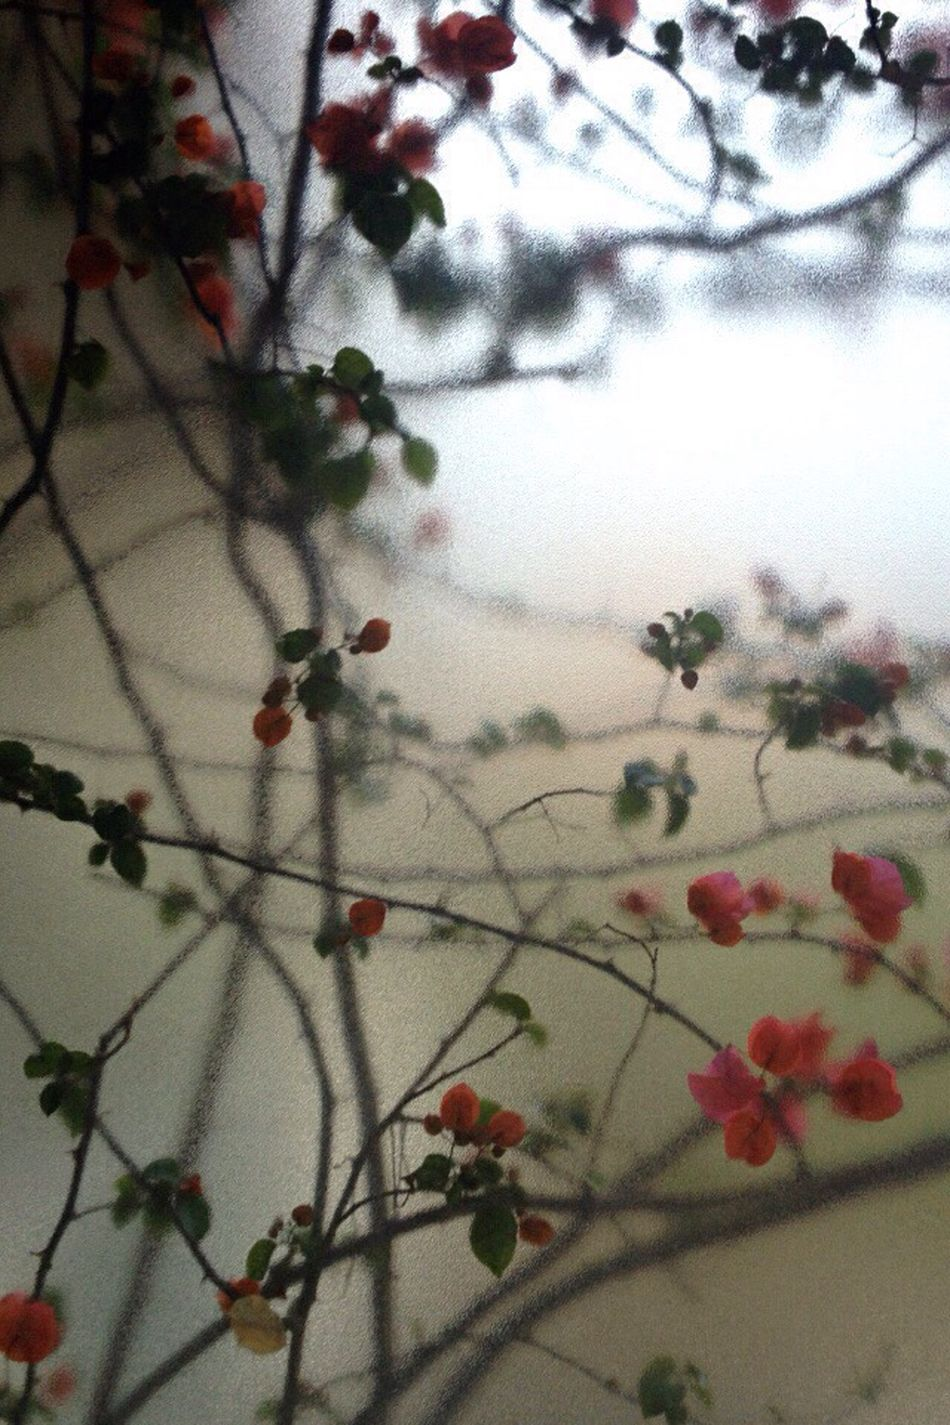 Bougainvillea Blossom Growth Through The Glass No People Tree Beauty In Nature Close-up Outdoors Freshness Day Plant Fragility Low Angle View Branch Translucent